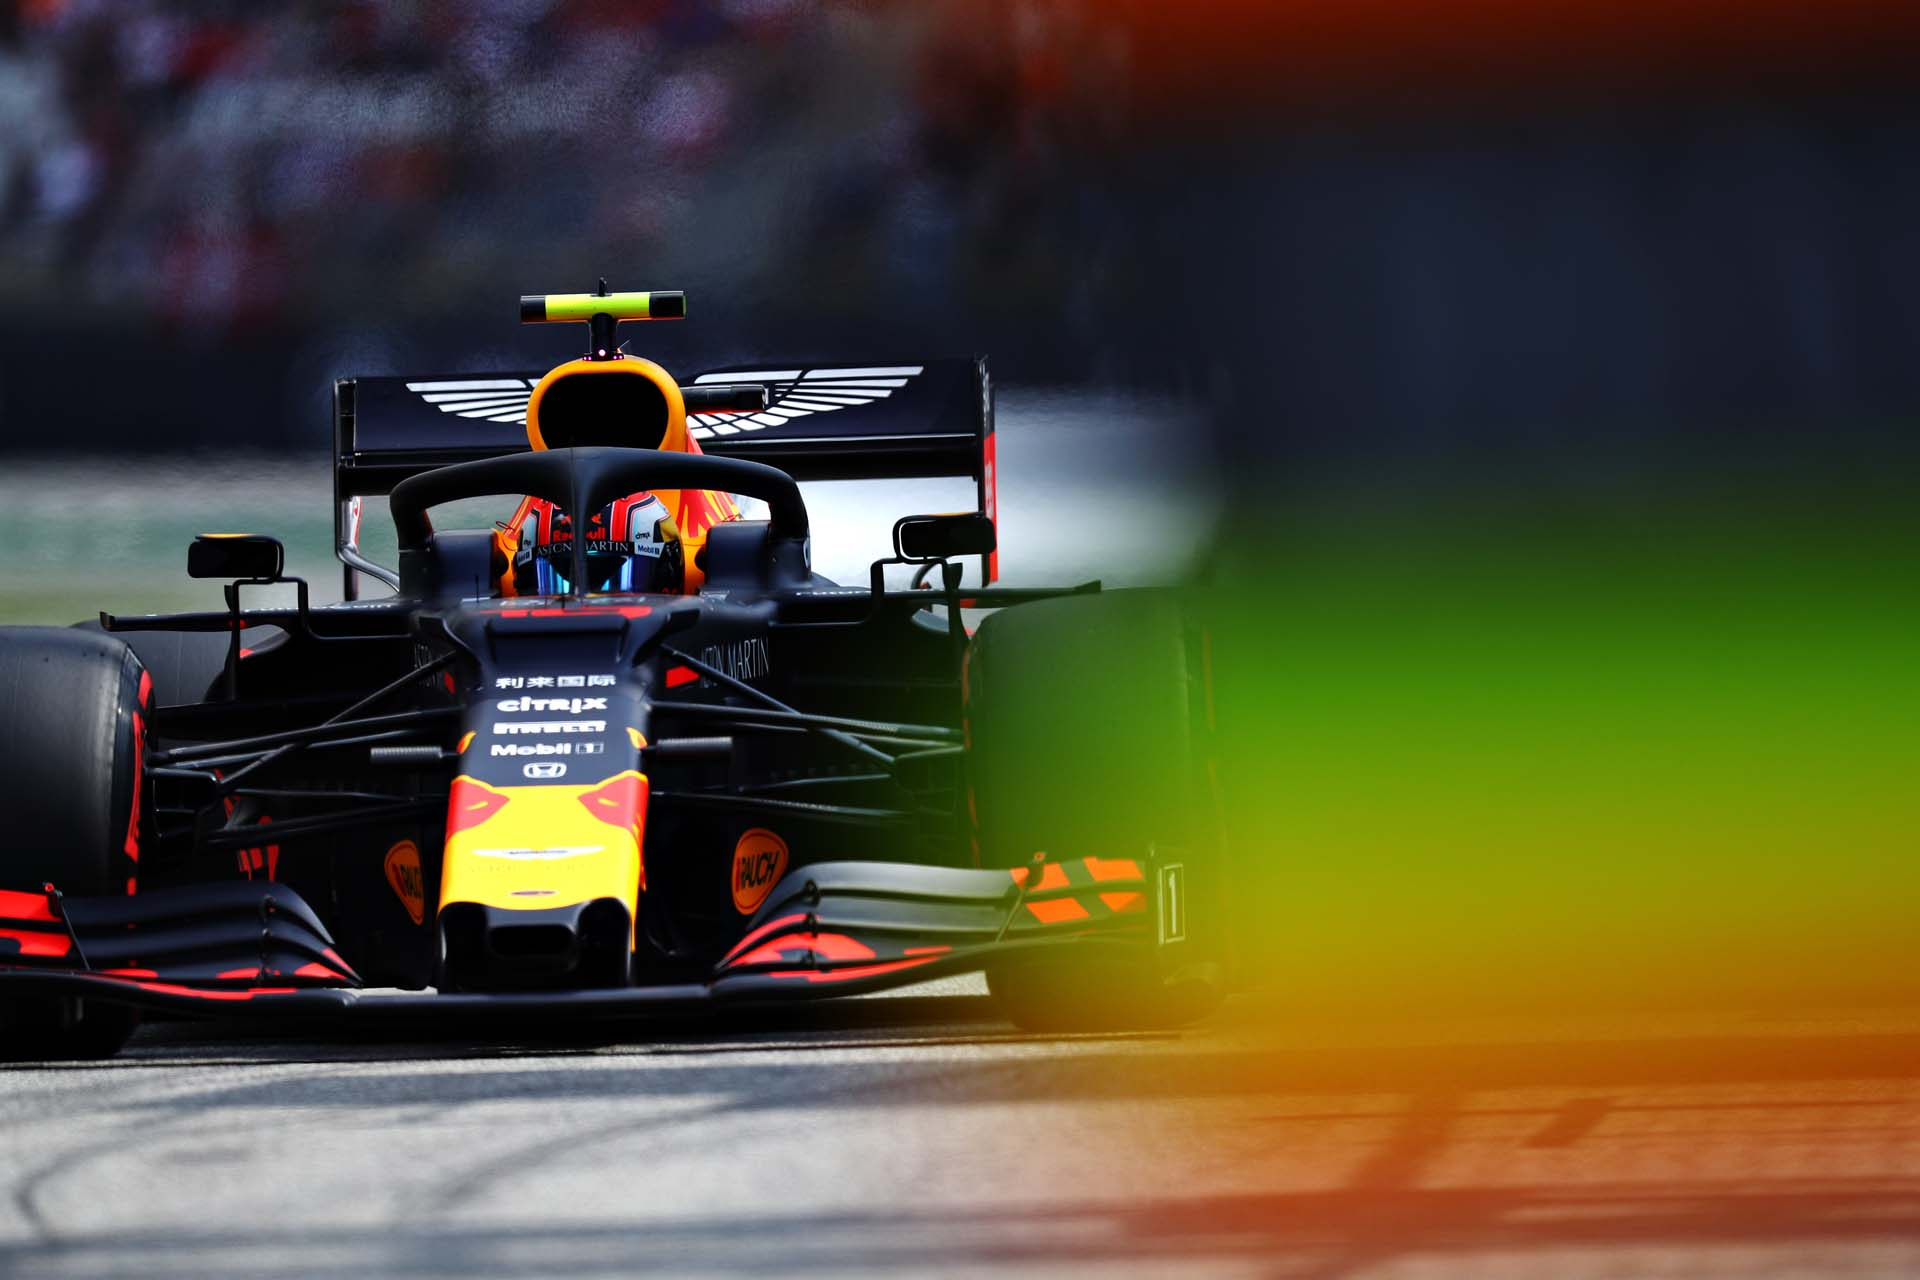 HOCKENHEIM, GERMANY - JULY 27: Pierre Gasly of France driving the (10) Aston Martin Red Bull Racing RB15 in the Pitlane during qualifying for the F1 Grand Prix of Germany at Hockenheimring on July 27, 2019 in Hockenheim, Germany. (Photo by Mark Thompson/Getty Images) // Getty Images / Red Bull Content Pool  // AP-212YA9S8S2511 // Usage for editorial use only // Please go to www.redbullcontentpool.com for further information. //